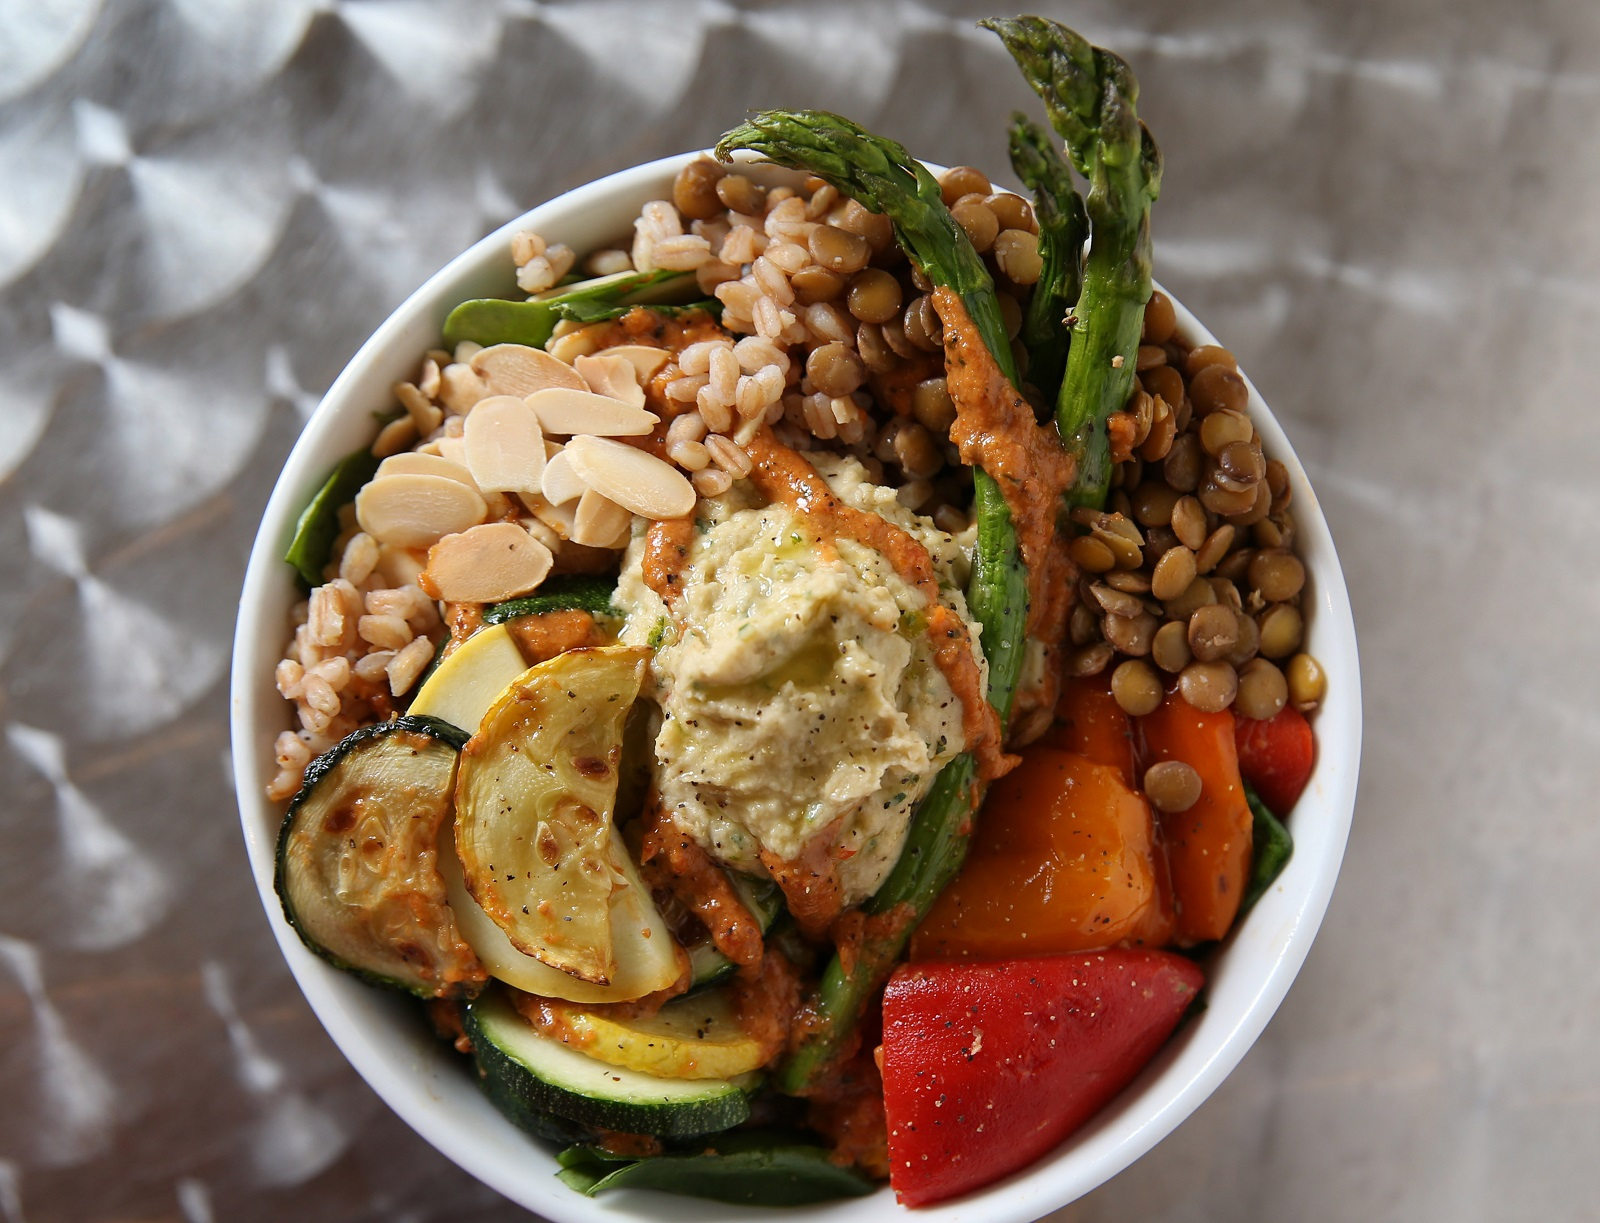 Organic 3 Cafe's grain bowl with grilled summer veggies.  It has organic spinach, organic faro, organic green lentils, locally grown summer squash and zucchini, roasted sweet peppers, asparagus, house-made hummus, toasted almonds, sundried tomato and basil pesto. (Sharon Cantillon/Buffalo News)